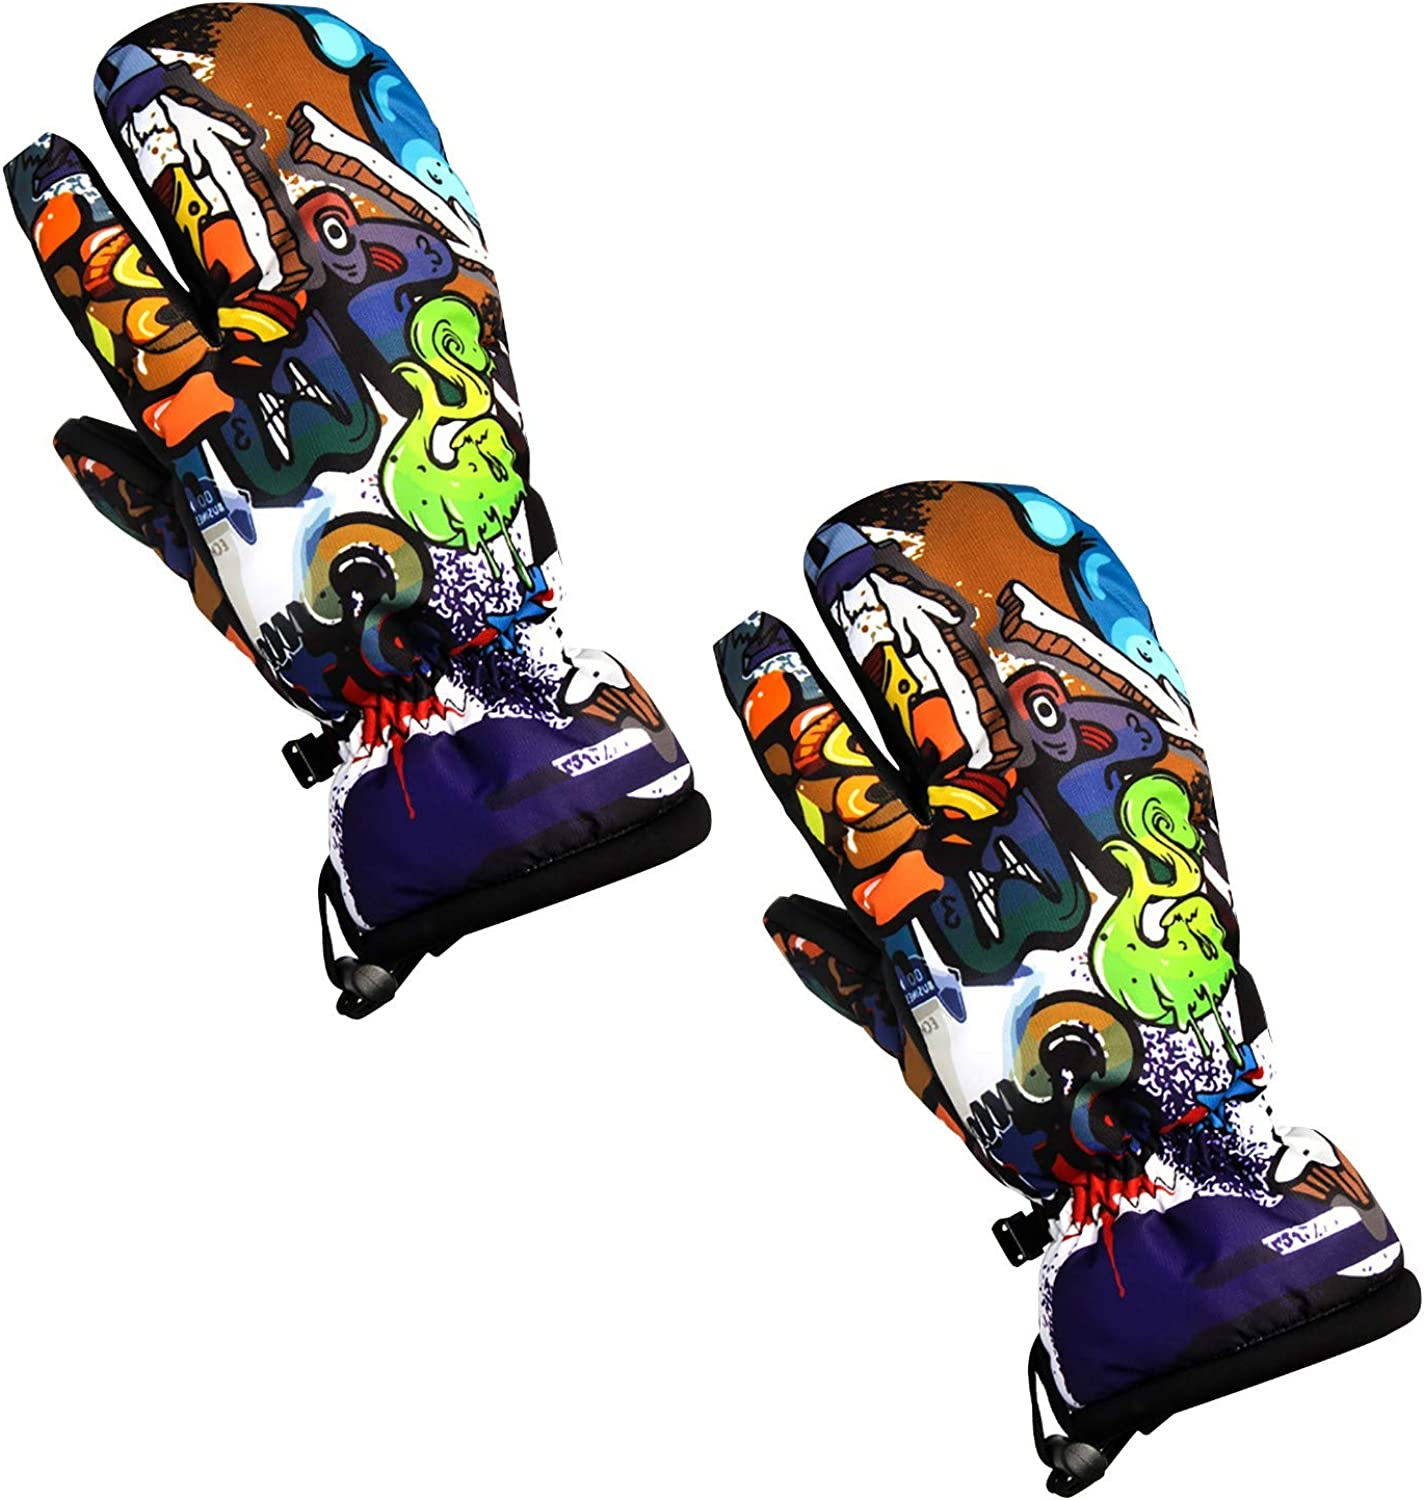 Waterproof Winter Work Gloves Outdoor Sports Ice Snow Cold Multi-Purpose Fashion/Prom/Warm/Bicycle Gloves